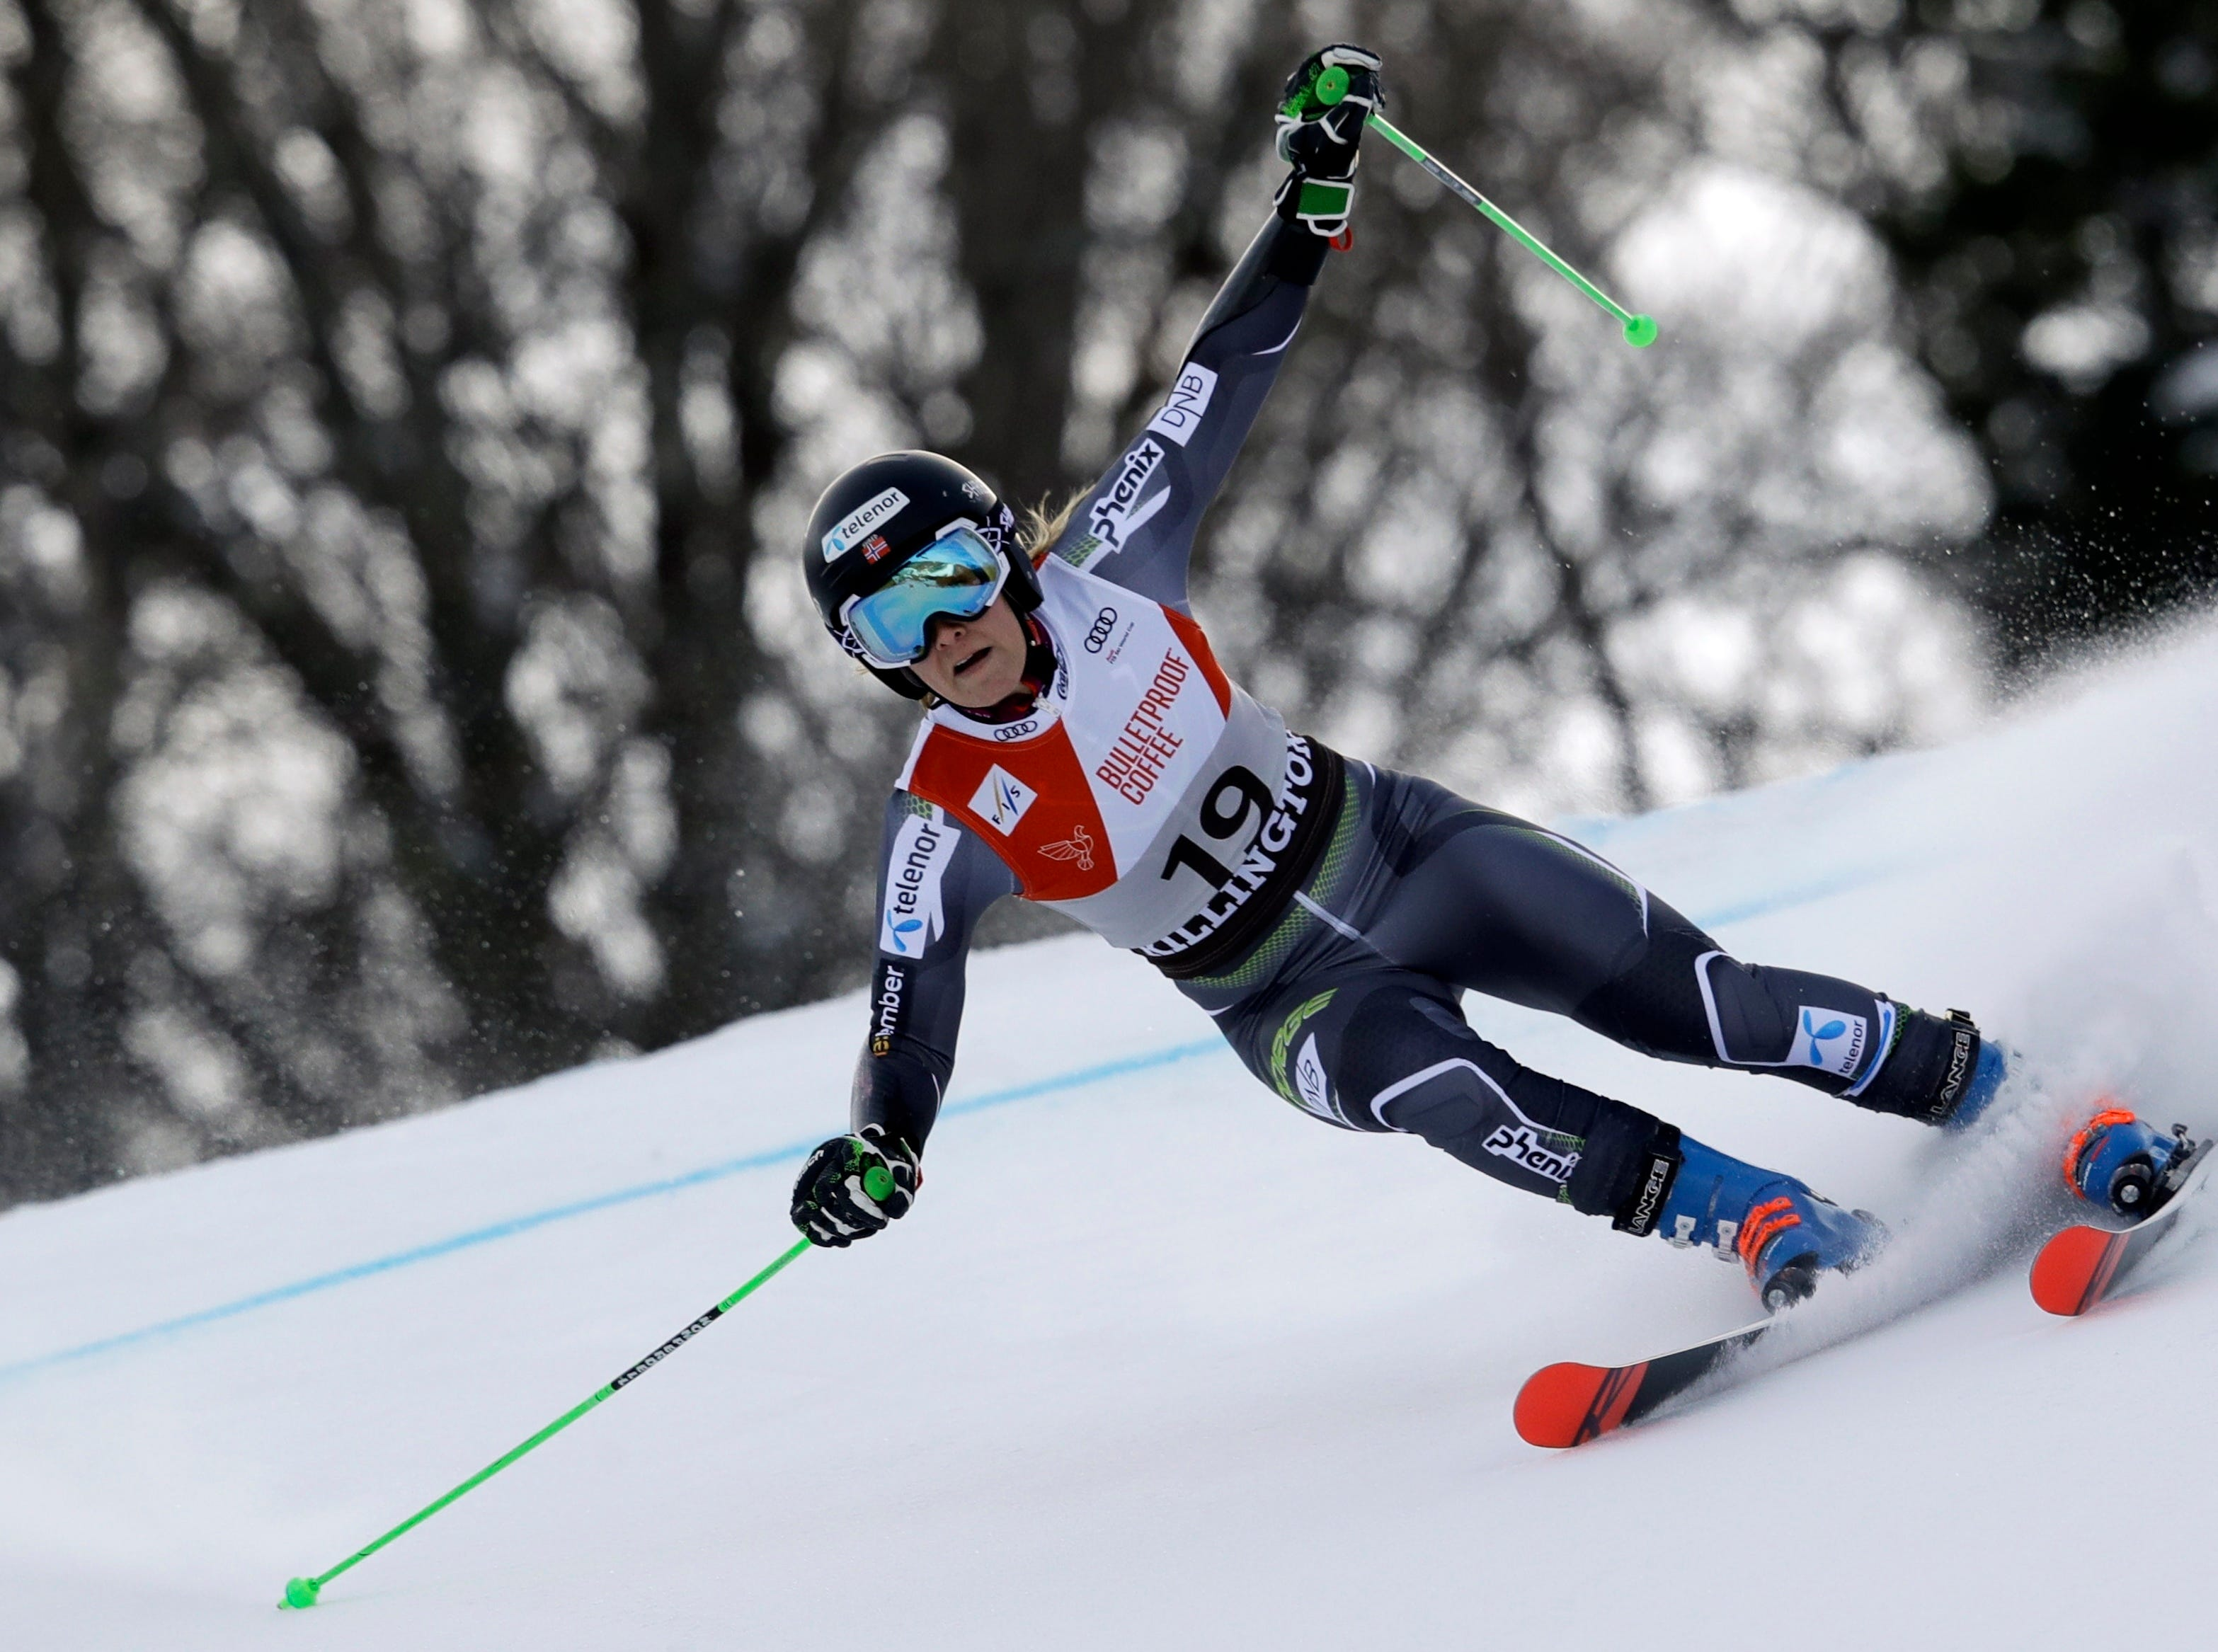 Norway's Nina Haver Loeseth competes during the first run of the alpine ski, women's World Cup giant slalom in Killington, Vt., Saturday, Nov. 24, 2018.